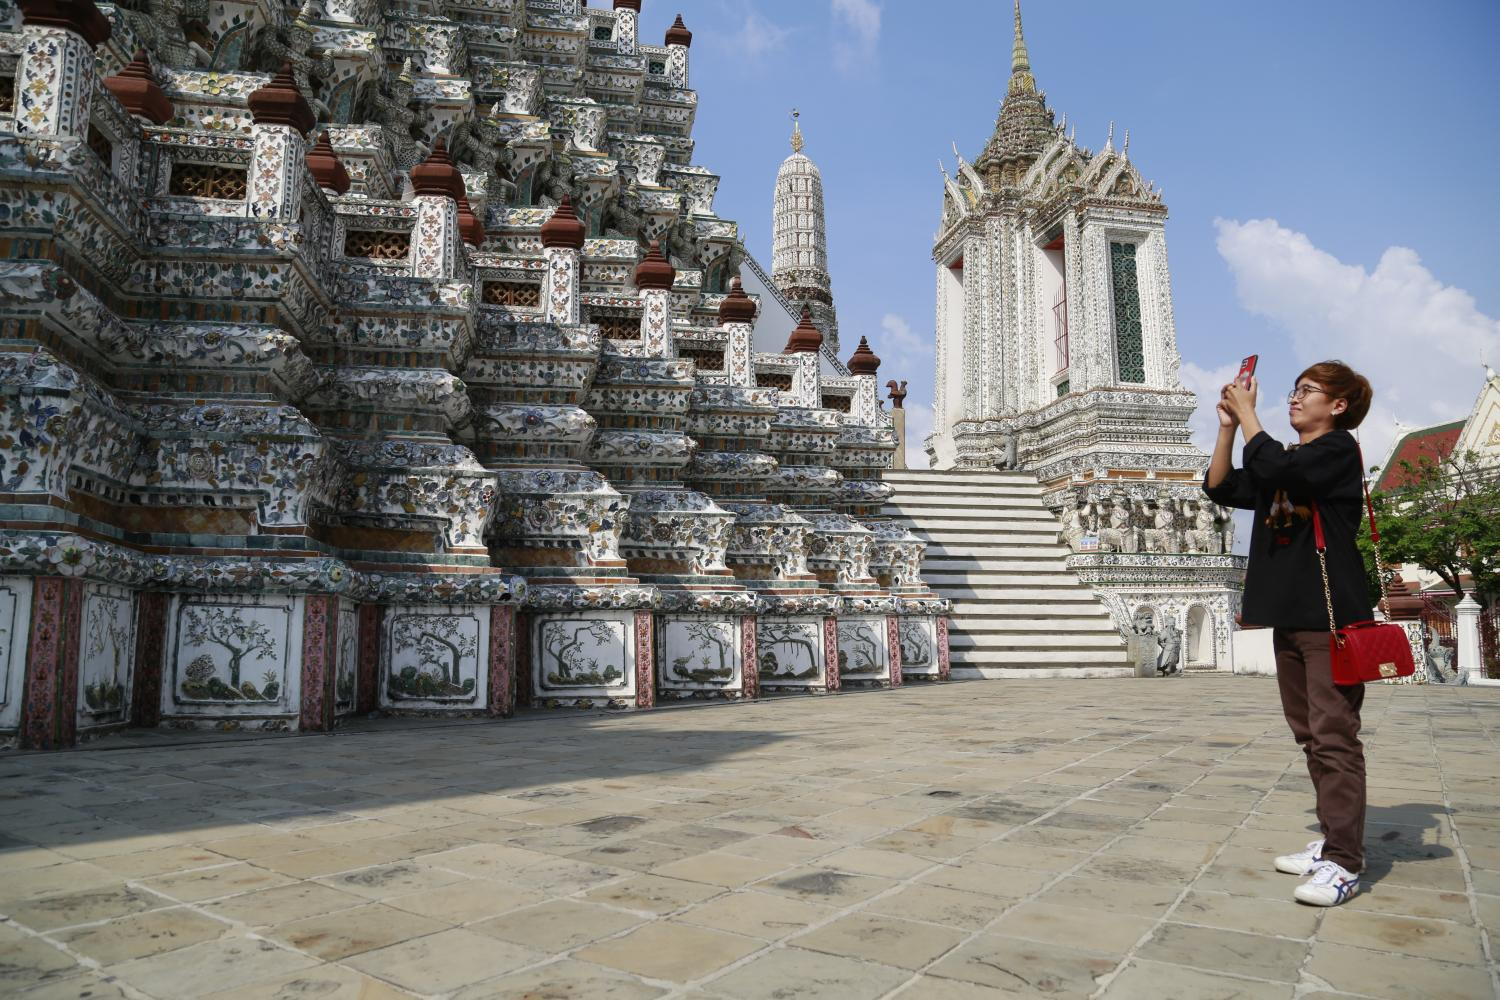 A tourist takes a picture at Wat Arun Ratchawararam Ratchaworamahawihan or Wat Arun which reopened to the public on Feb 15, 2021.(Photo by Arnun Chonmahatrakool)